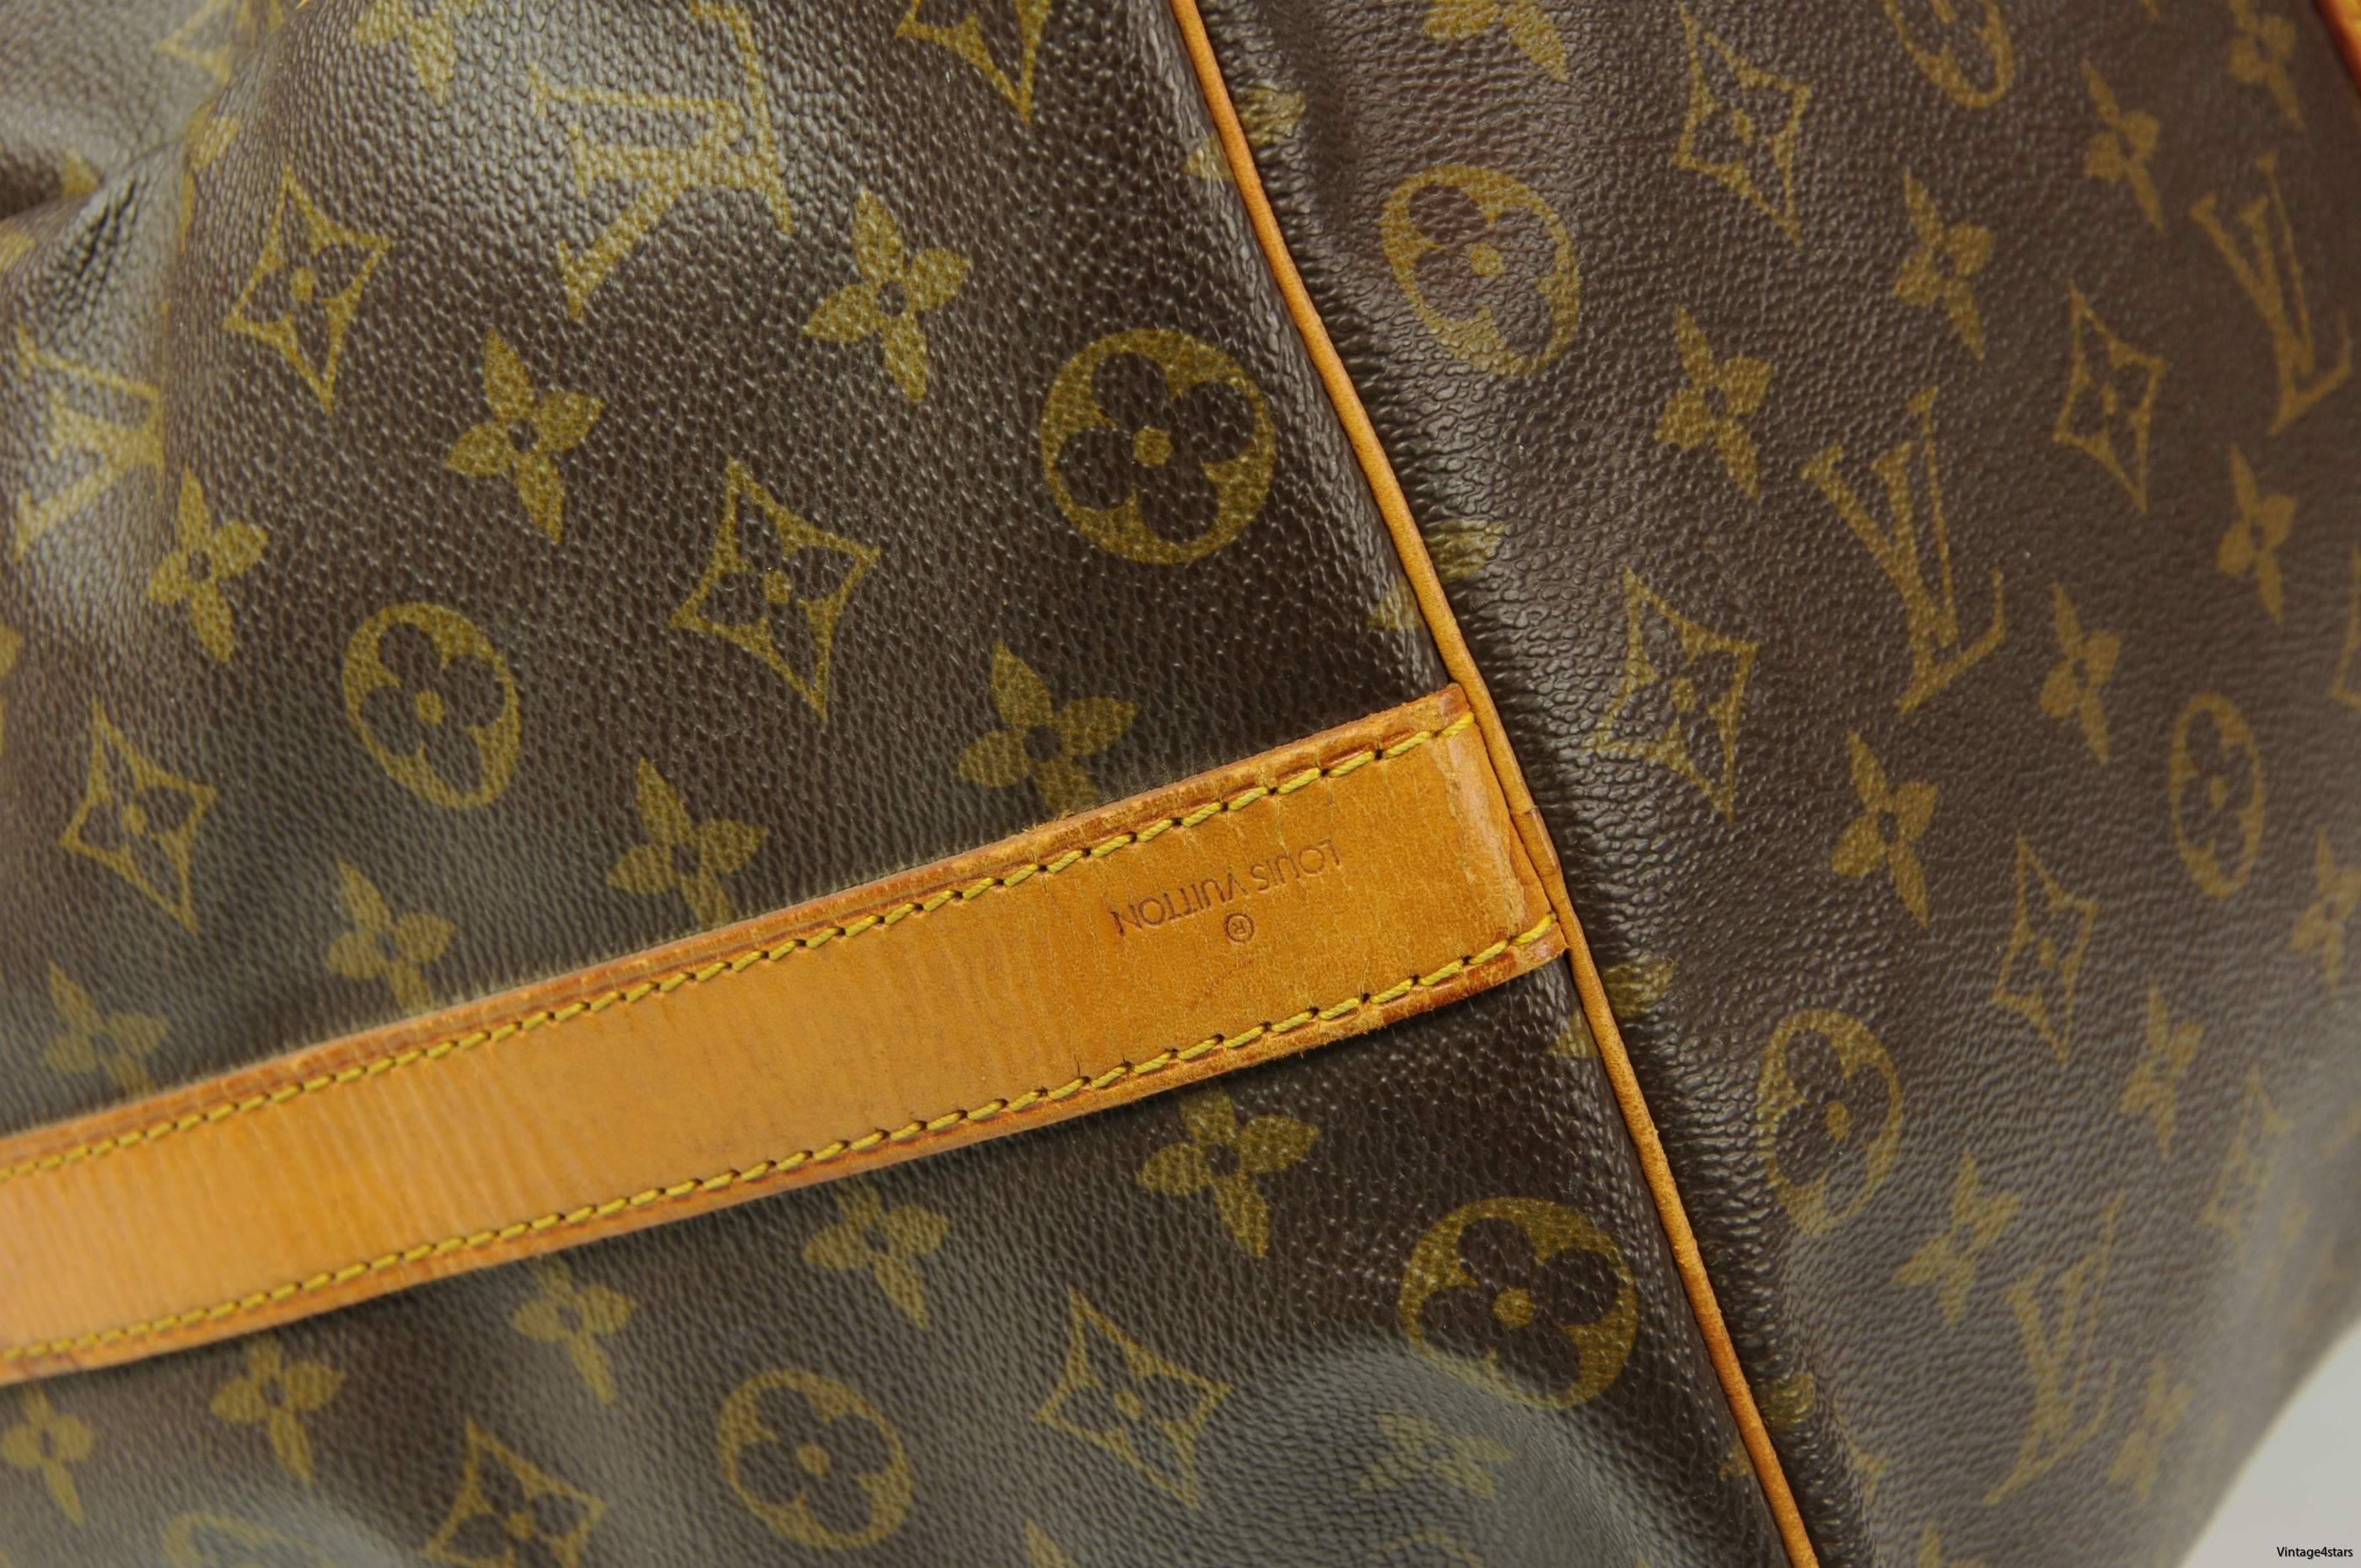 Louis Vuitton Keepall 50 4